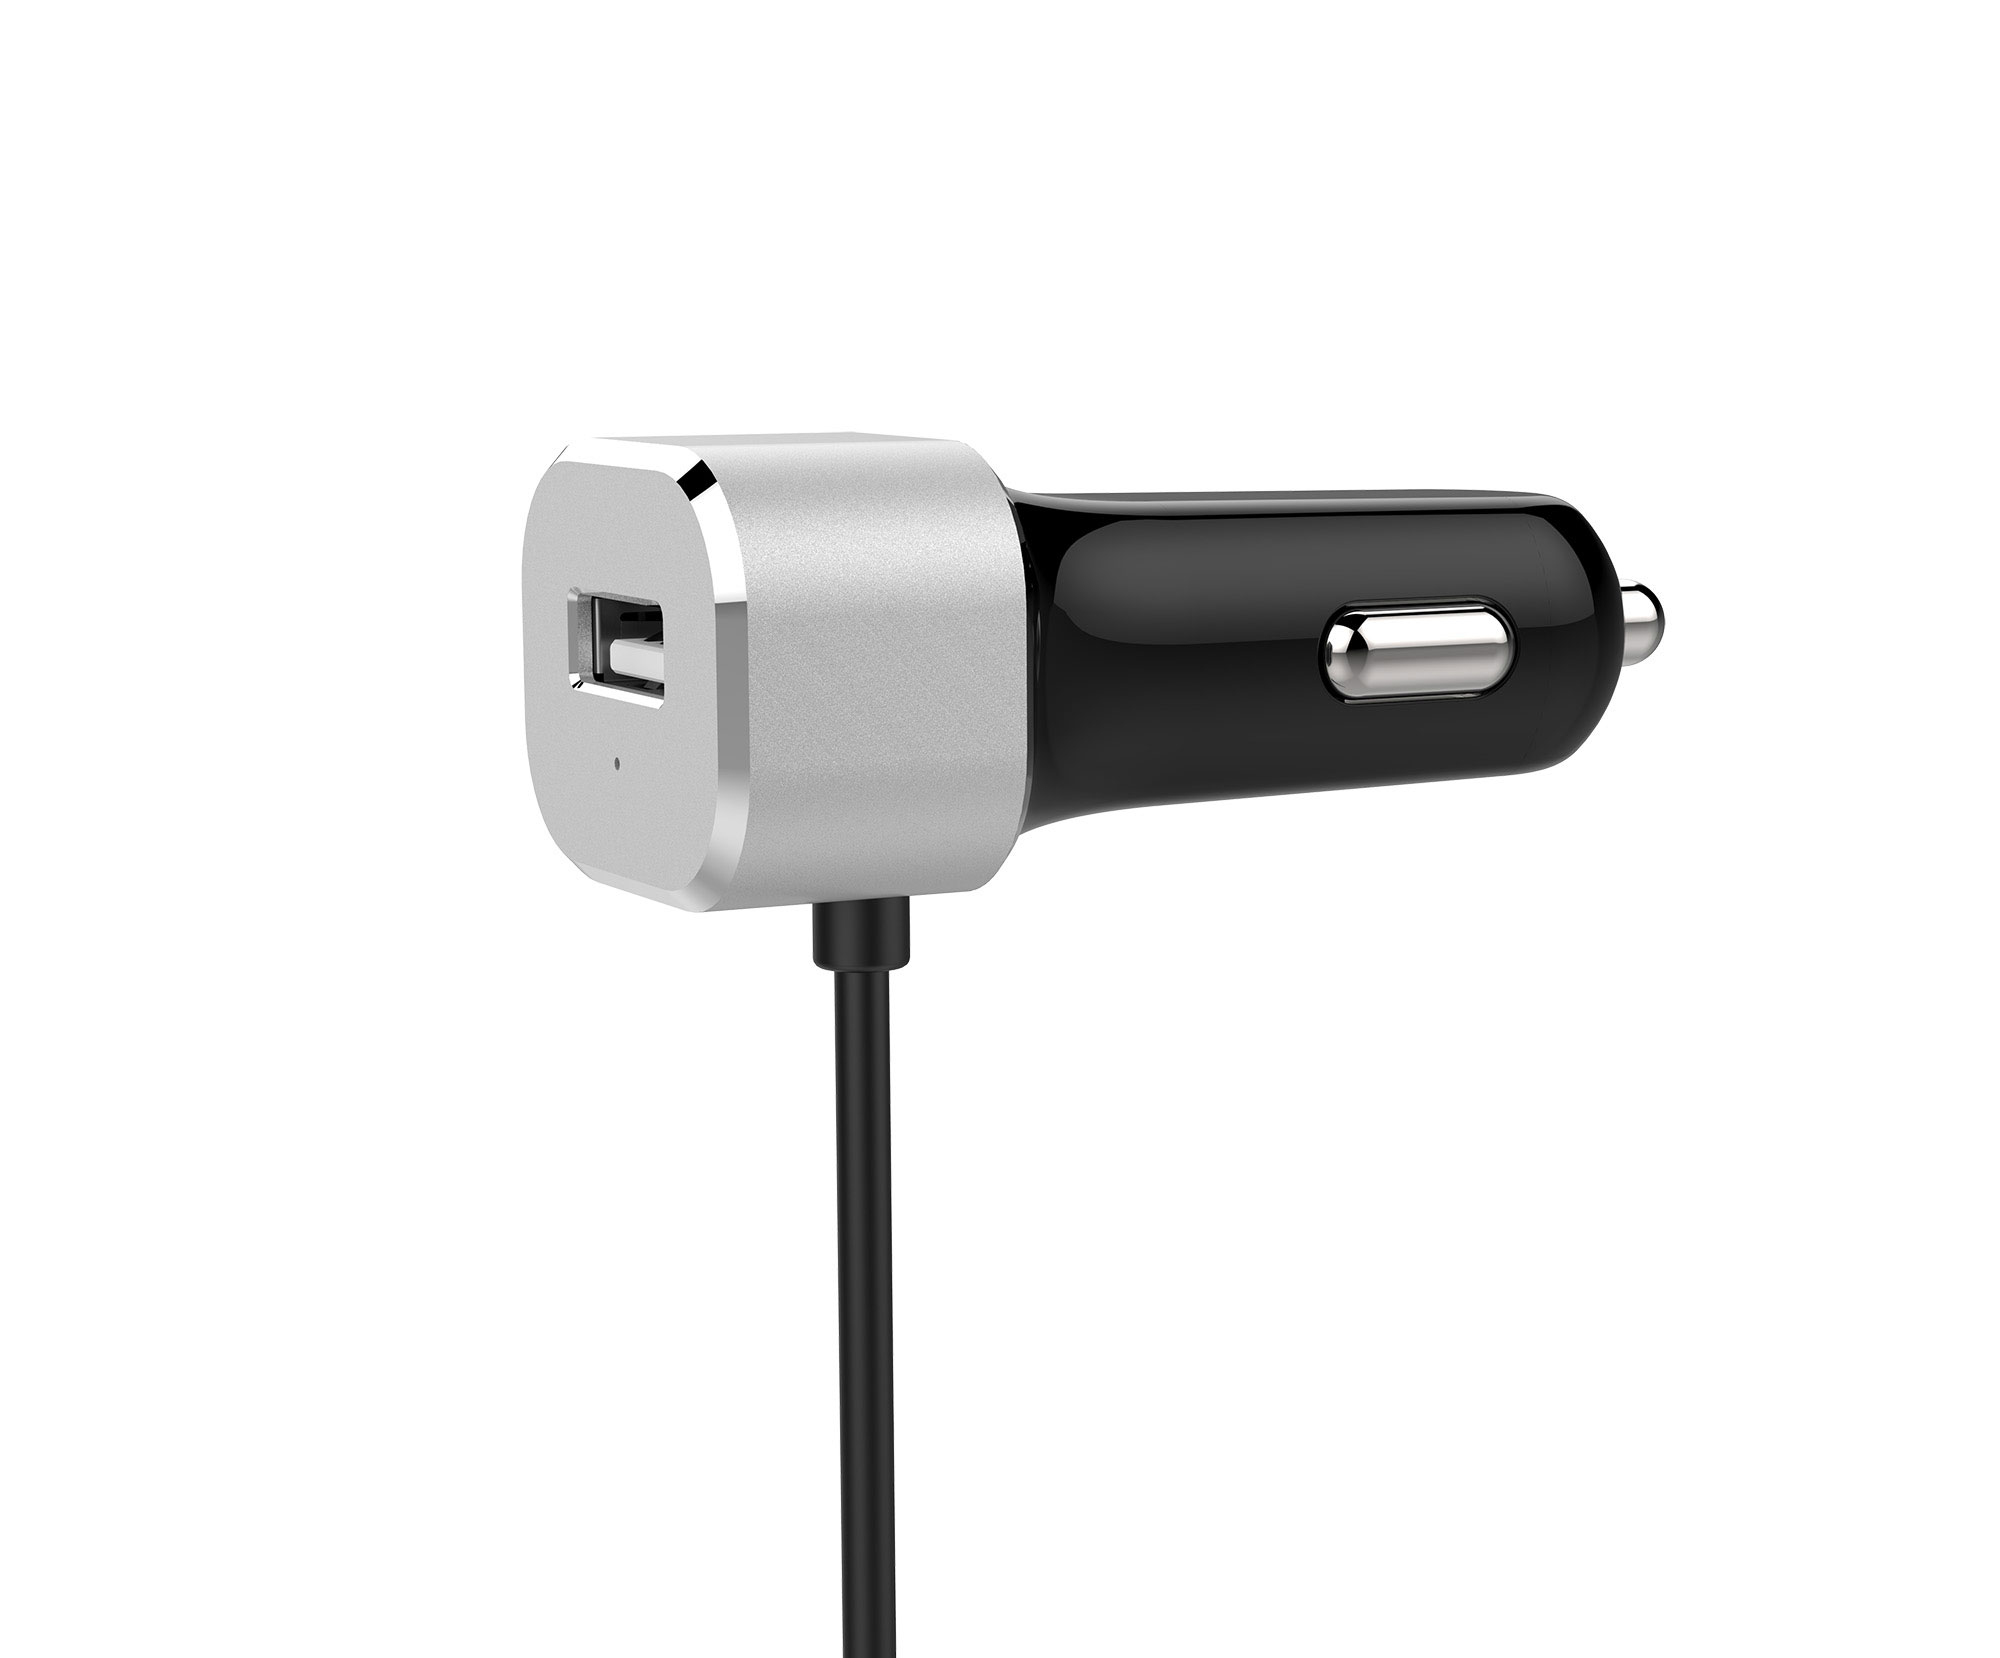 27W 1 Port Car Charger with USB-C Cable